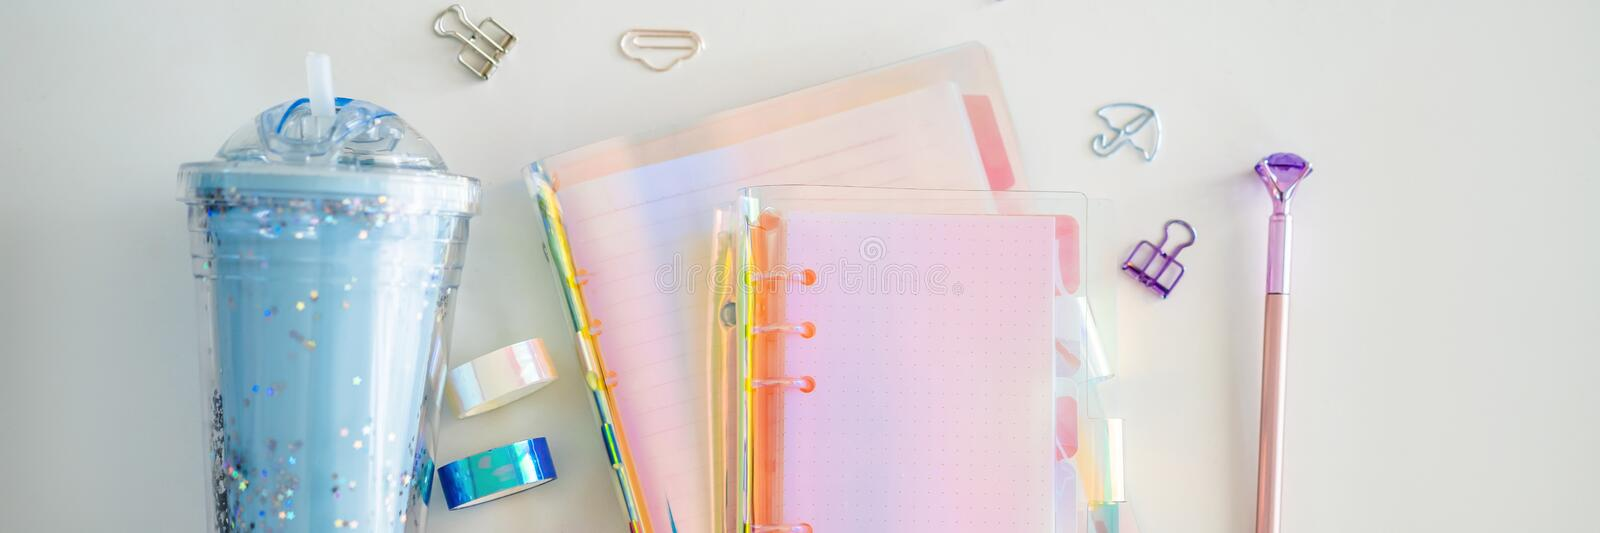 Notepad and stationery on white background. Planner for business and study. Fans of stationery BANNER, LONG FORMAT. Notepad and stationery on white background stock photos